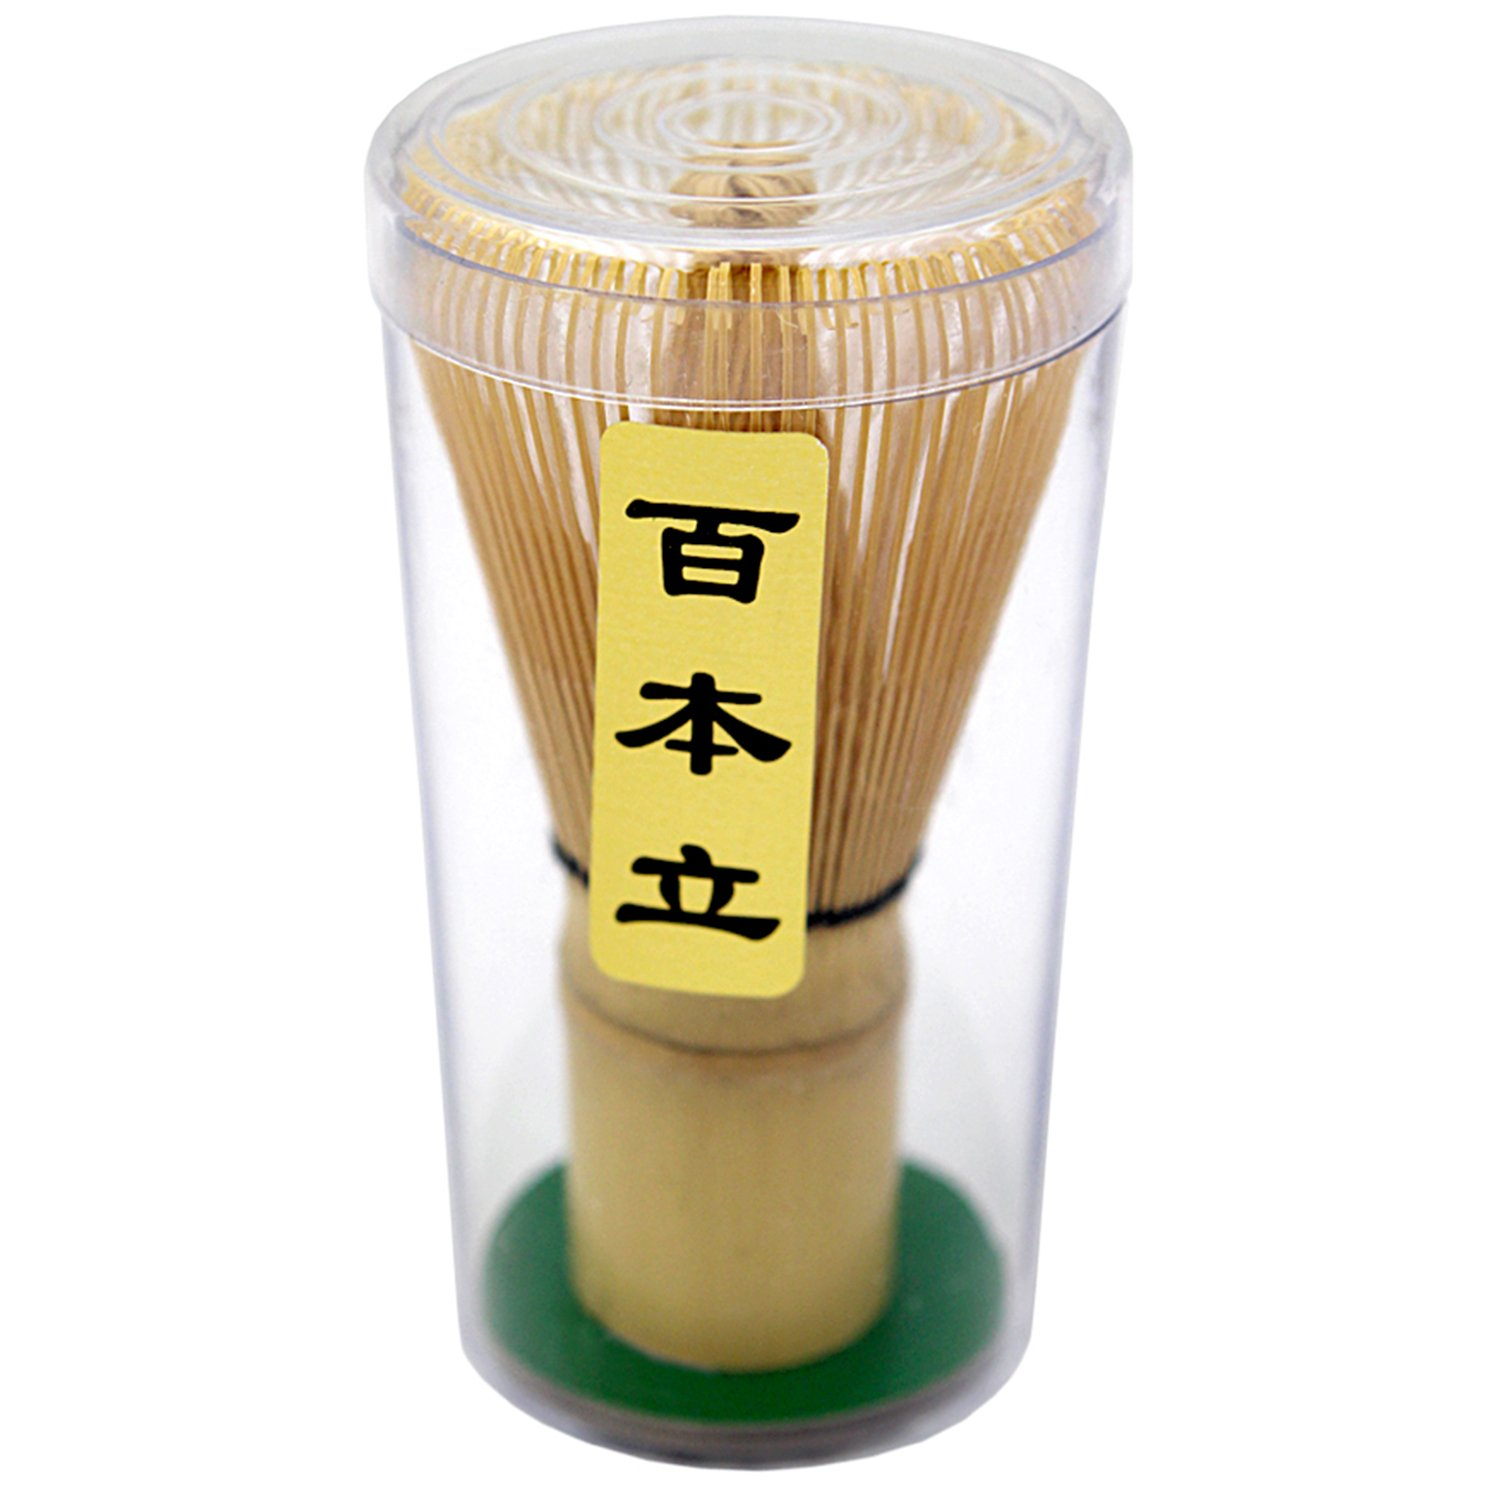 Bamboo Whisk (Chasen) and Hooked Bamboo Scoop (Chashaku) - Matcha Tea Whisk for Matcha Tea Preparation - MatchaDNA Brand - Traditional Matcha Whisk Made from Durable and Sustainable Golden Bamboo